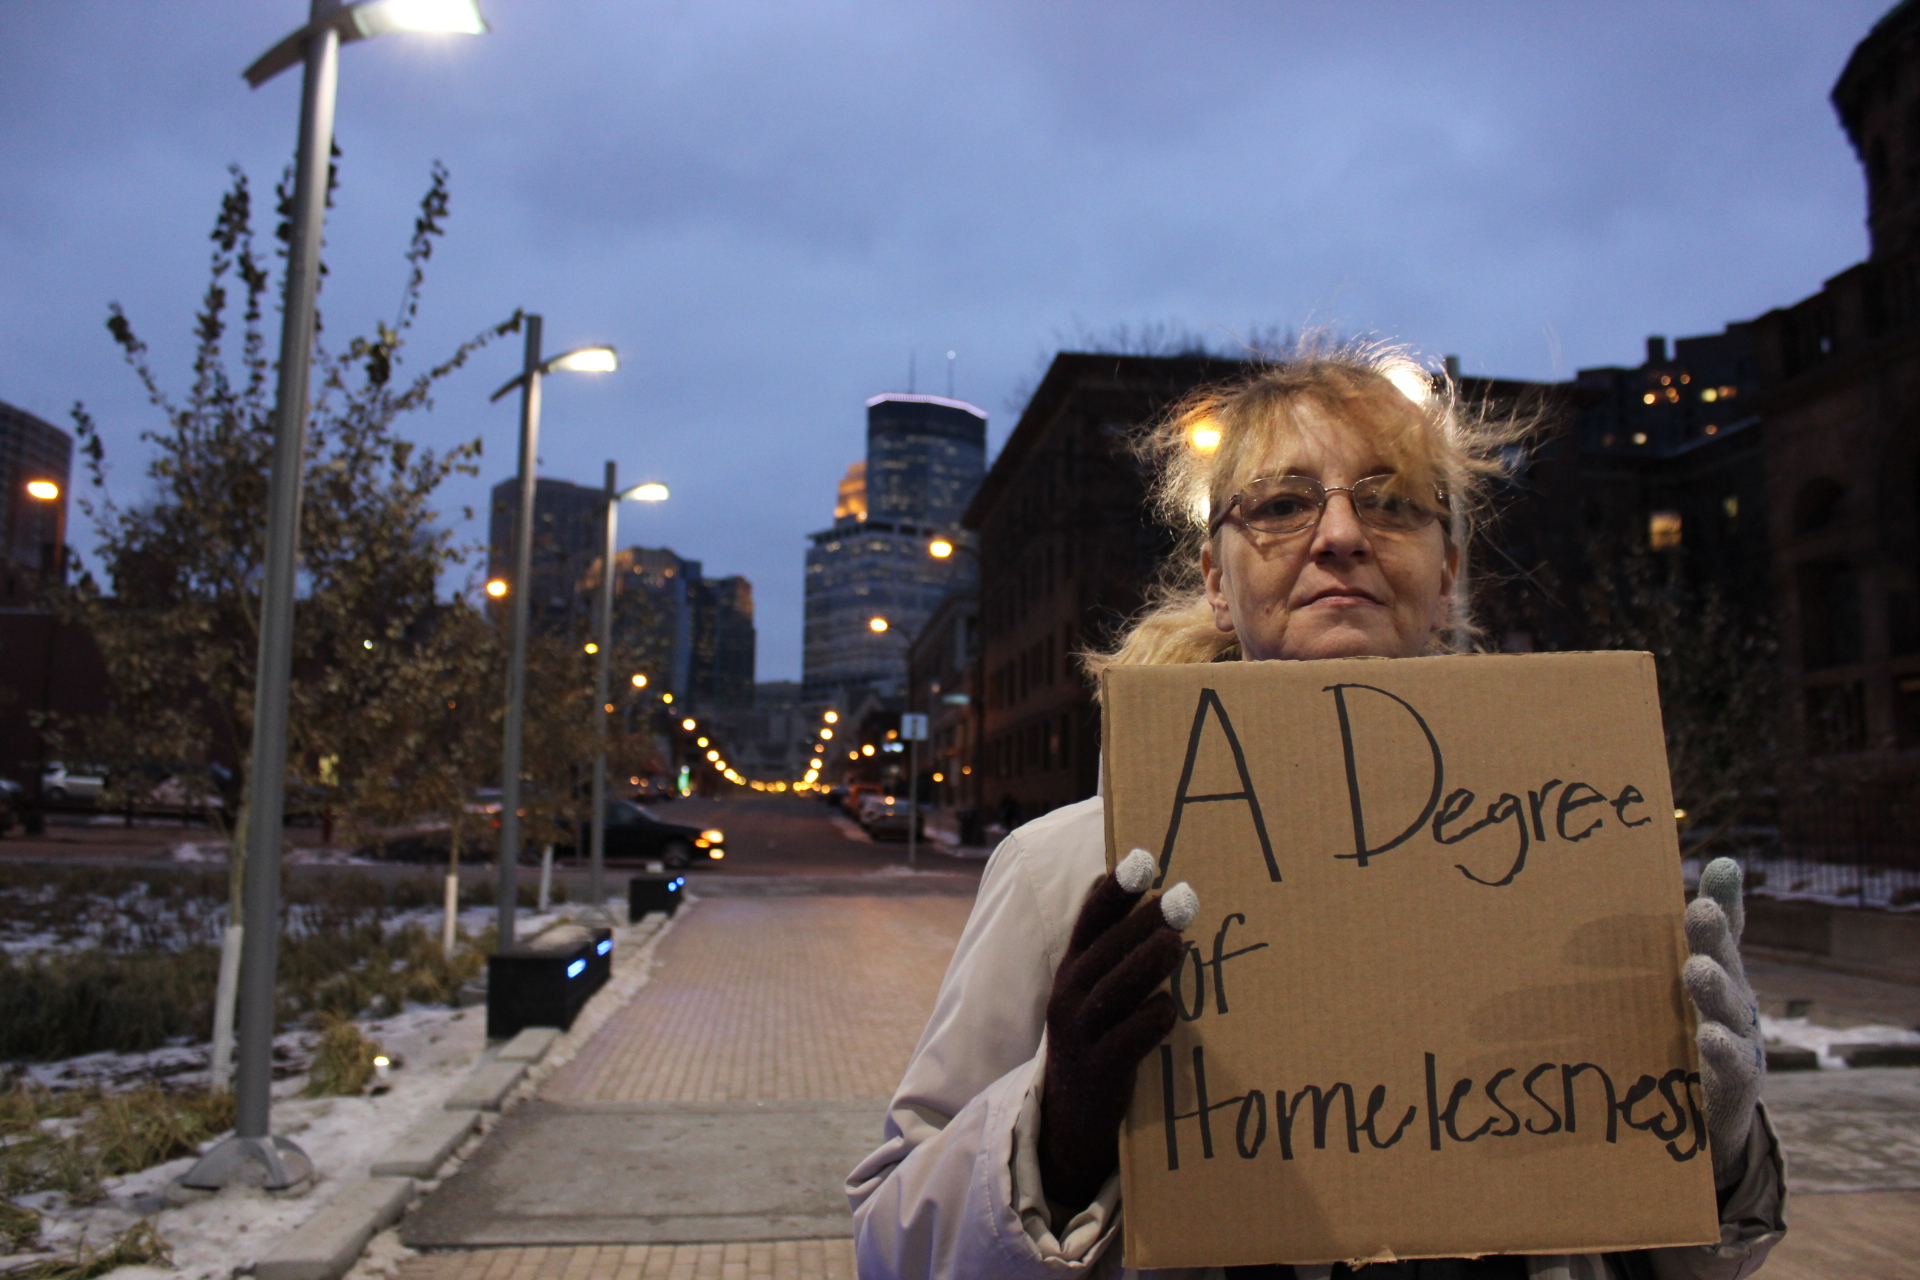 A degree of homeless